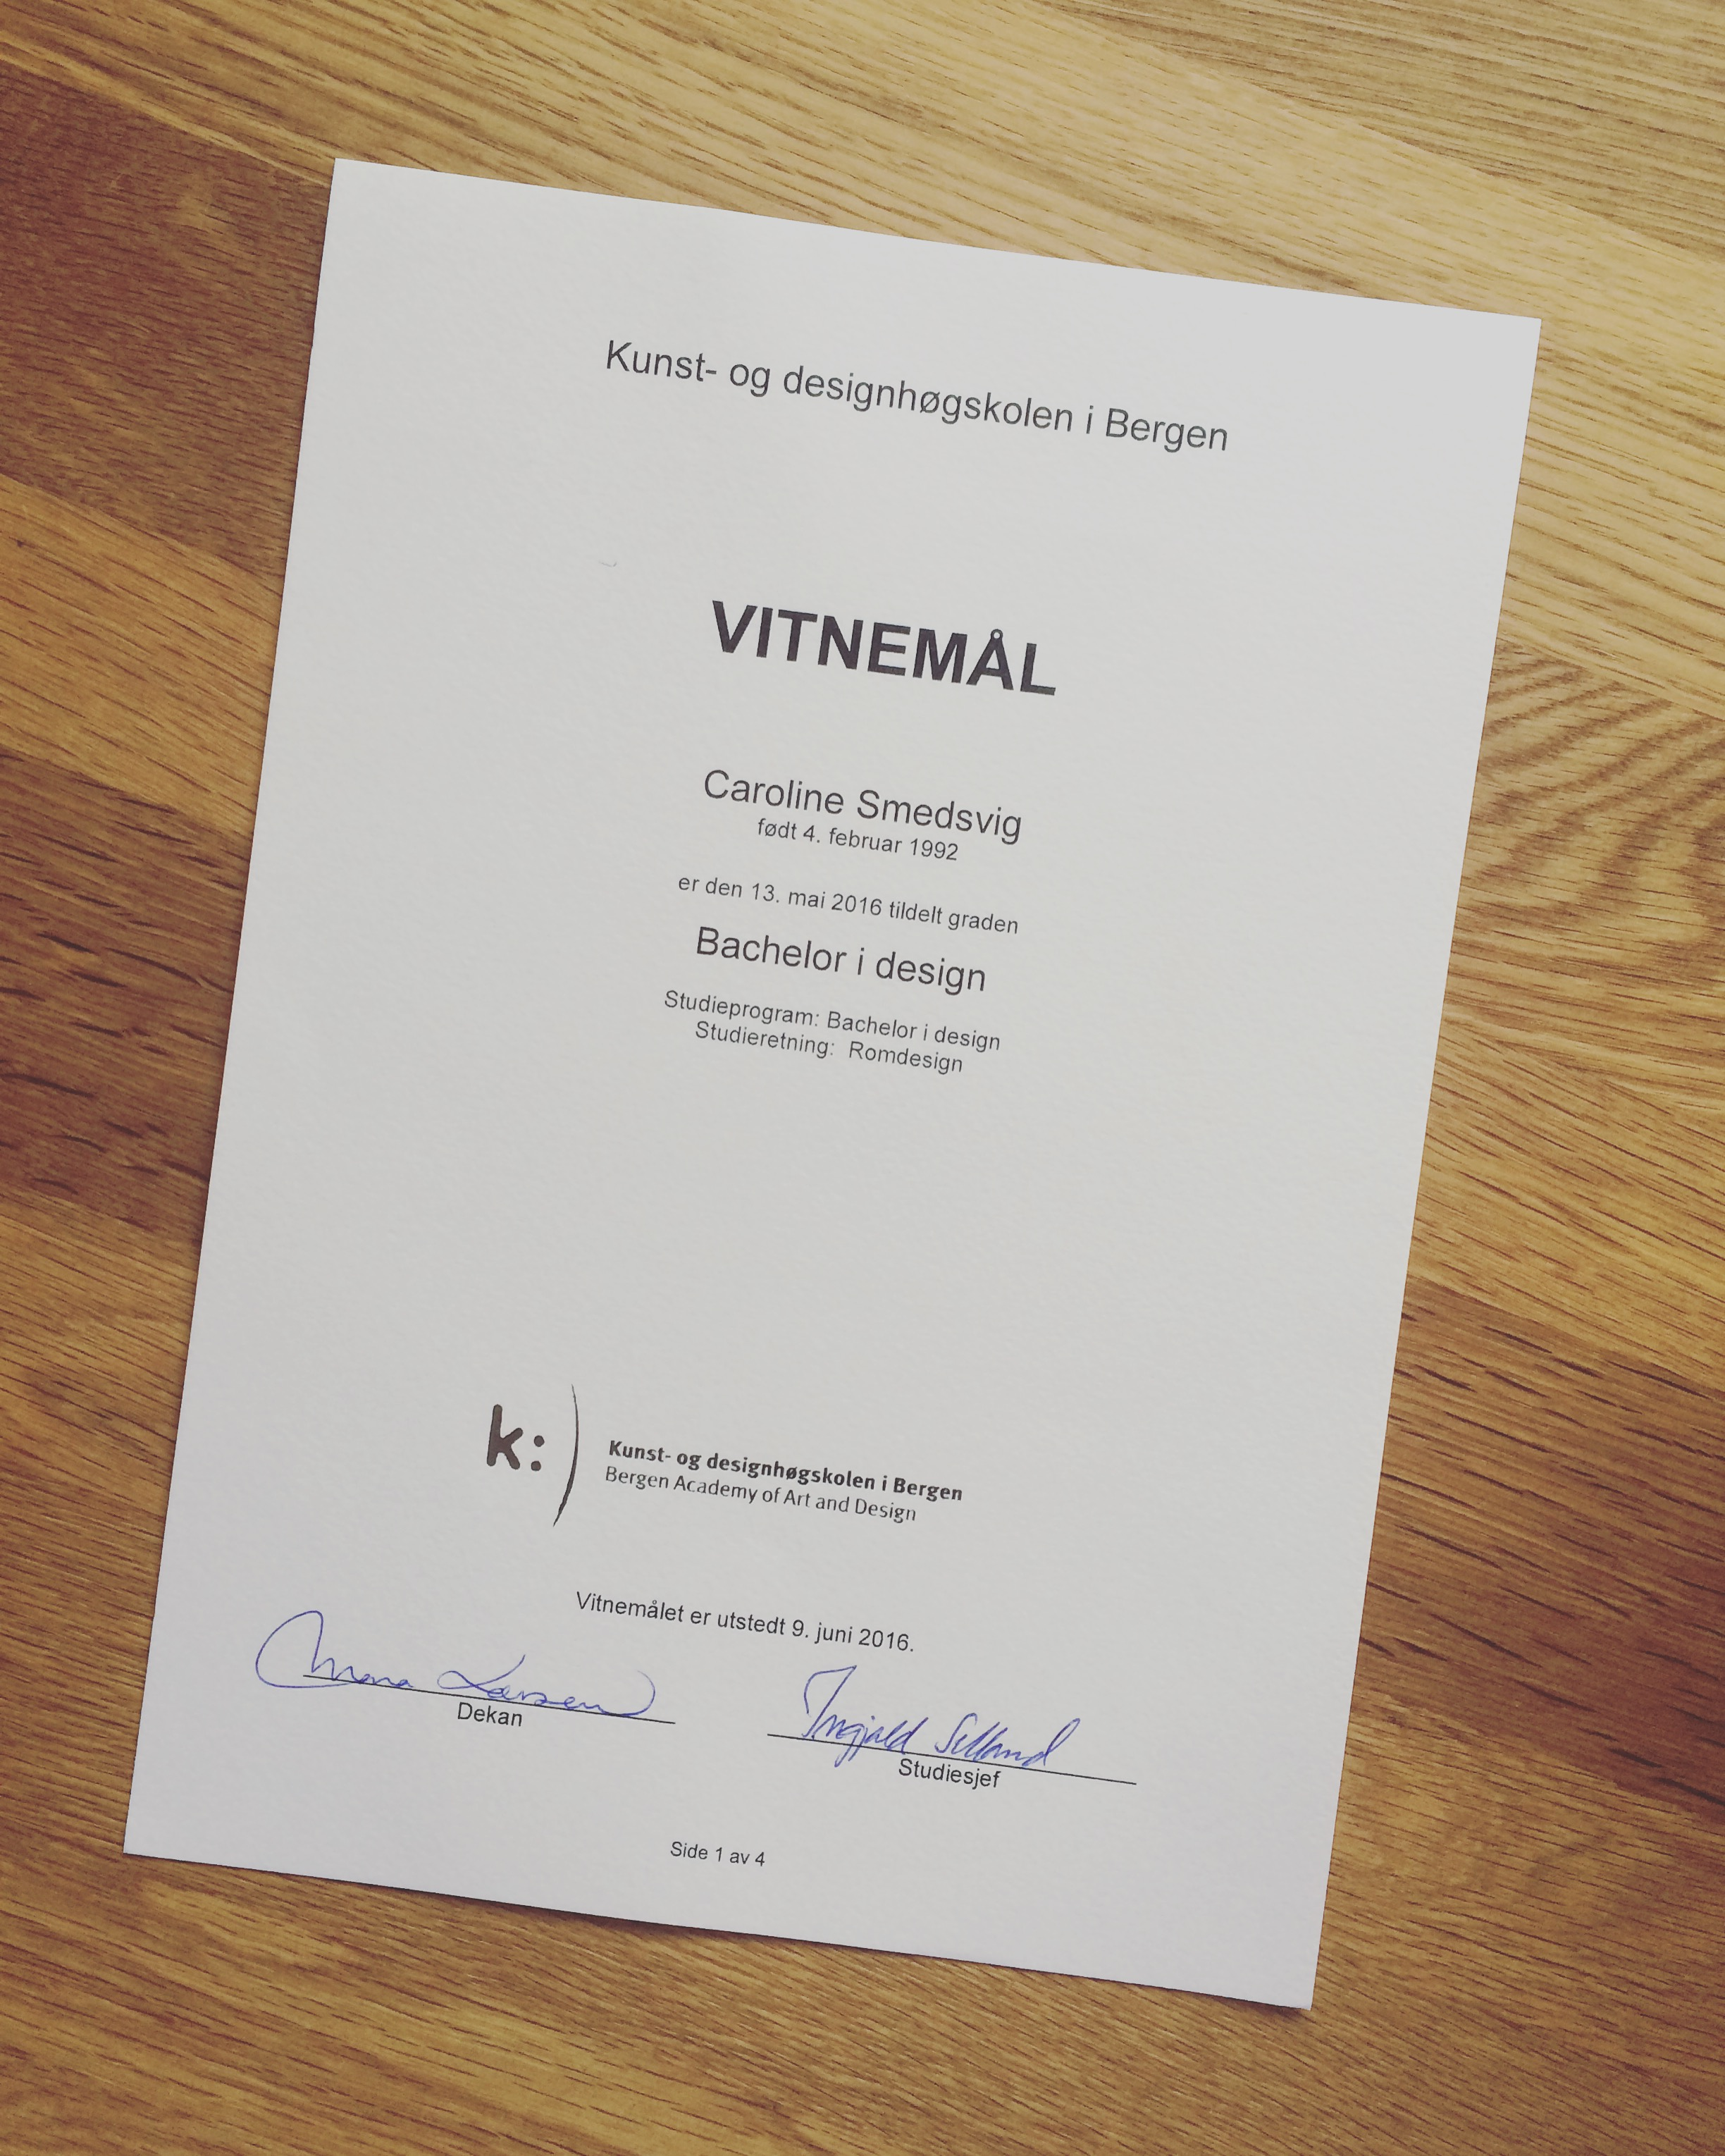 Bachelorgrad i design - et steg nærmere fullført studie // Bachelor degree - one step closer to finish my studies.